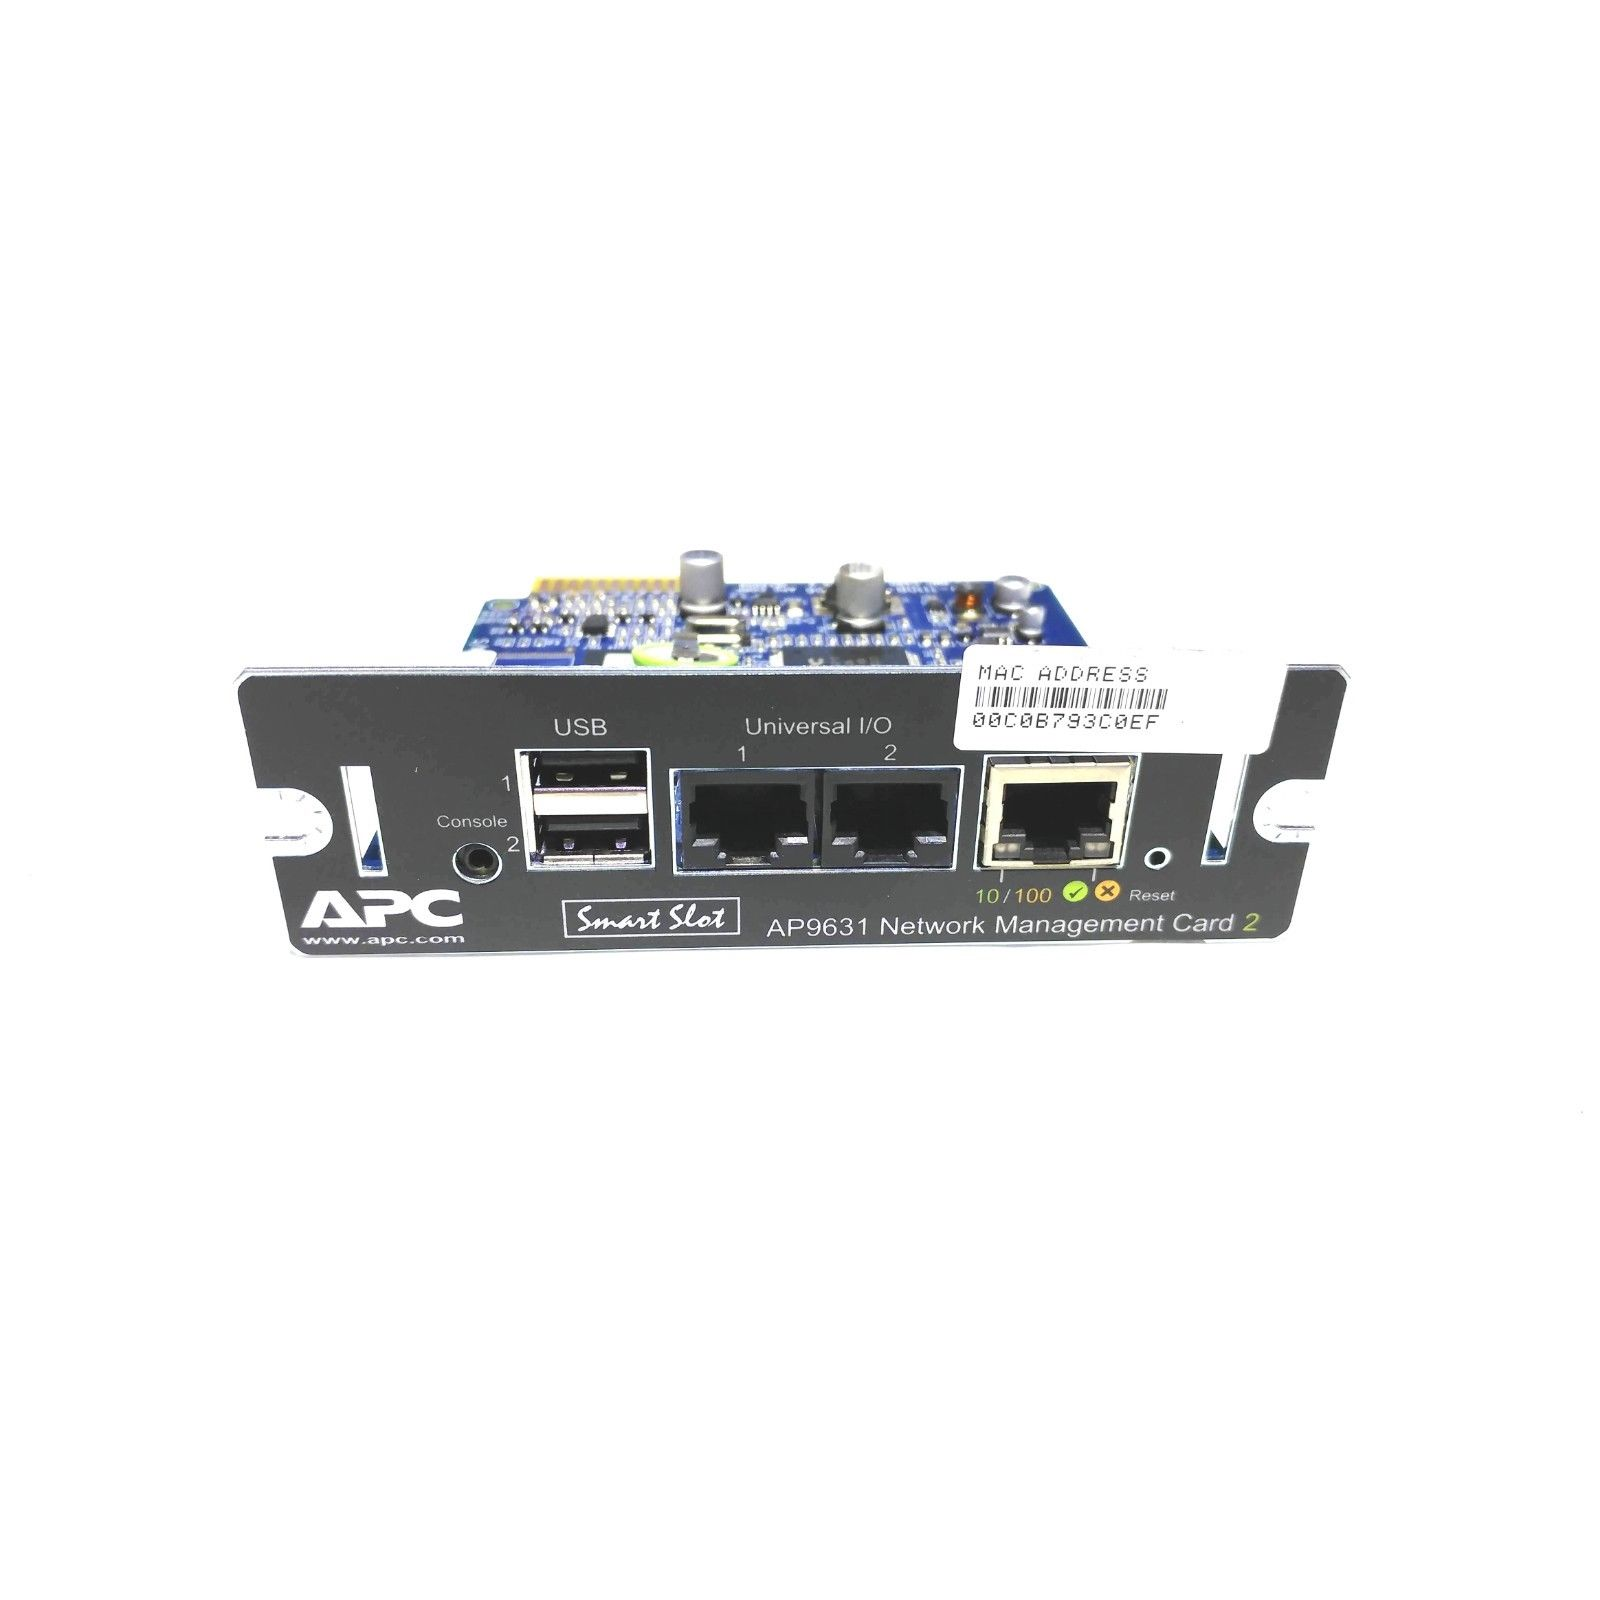 623661dcac2 APC Smart-UPS Network Management Card 2 NMC with EM Smart-Slot Card ...